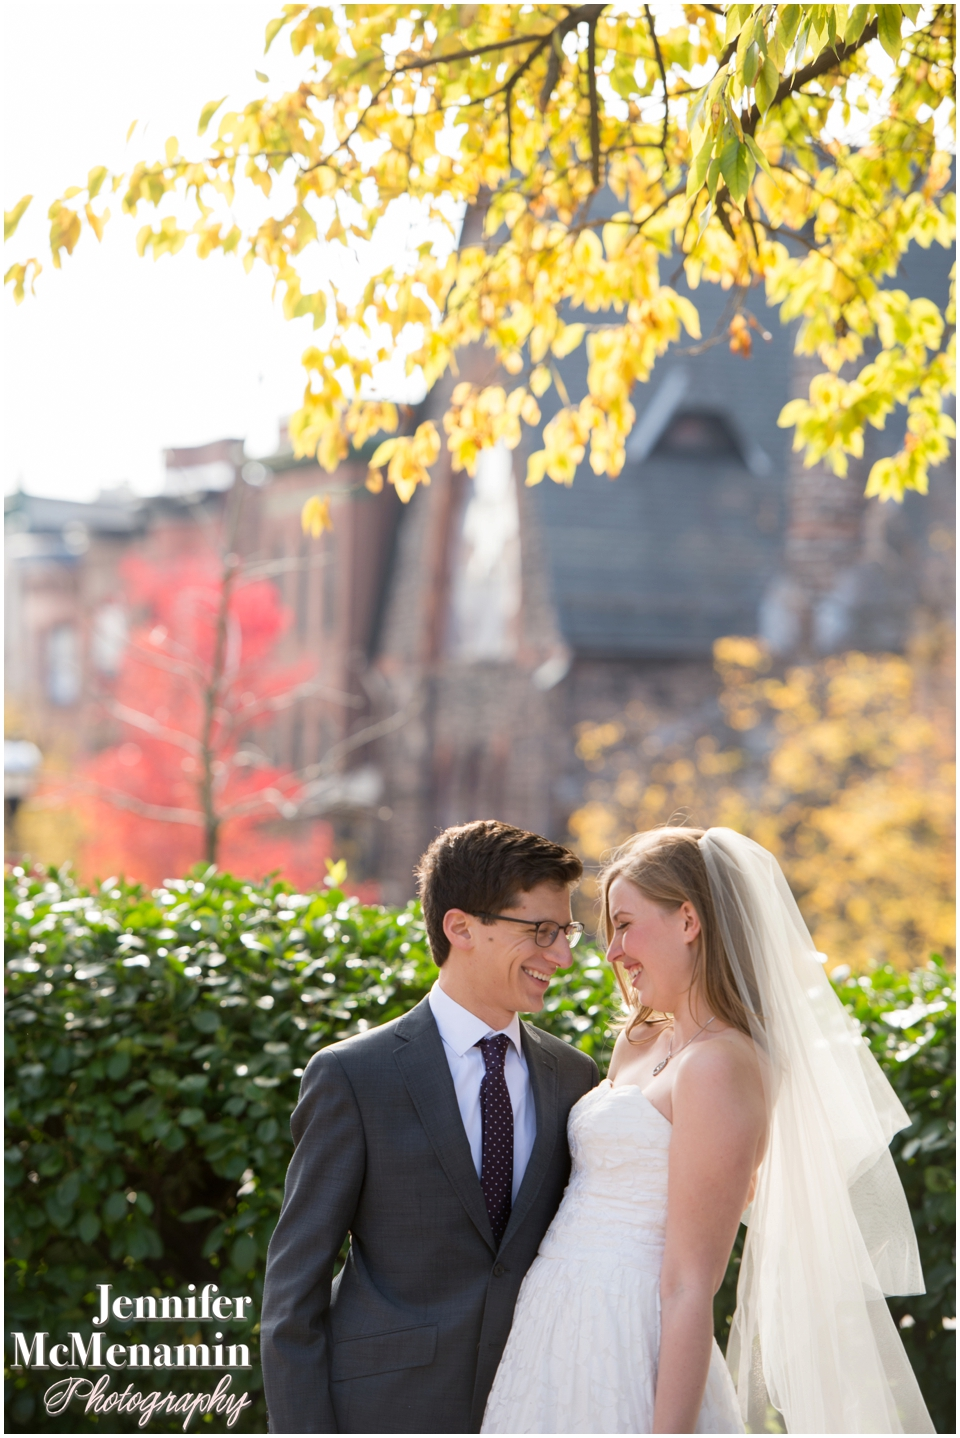 0036-WebbSlivnick_00935-0198_JenniferMcMenaminPhotography_George-Peabody-Library-wedding_Baltimore-wedding-photography_Baltimore-wedding-photographer